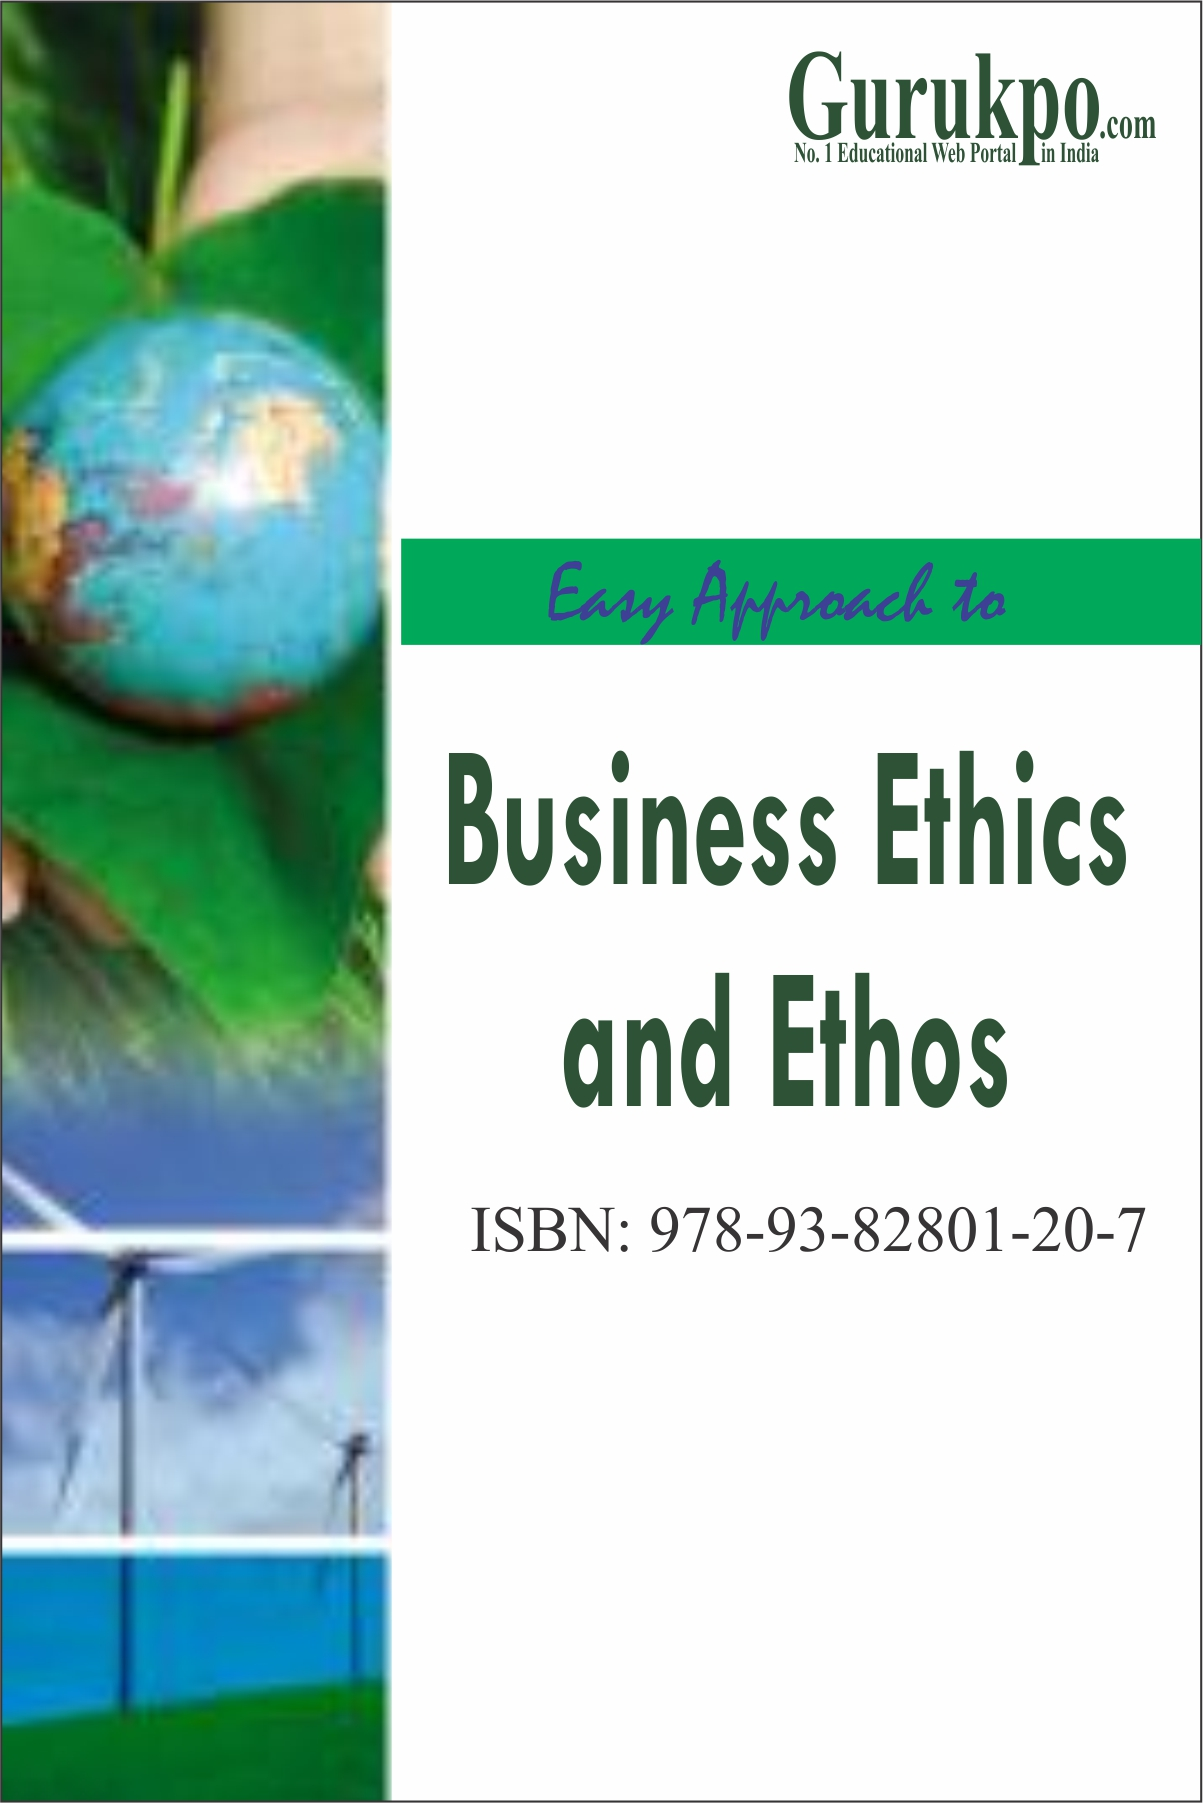 Business Ethics and Ethos | Free Study Notes for MBA MCA ...